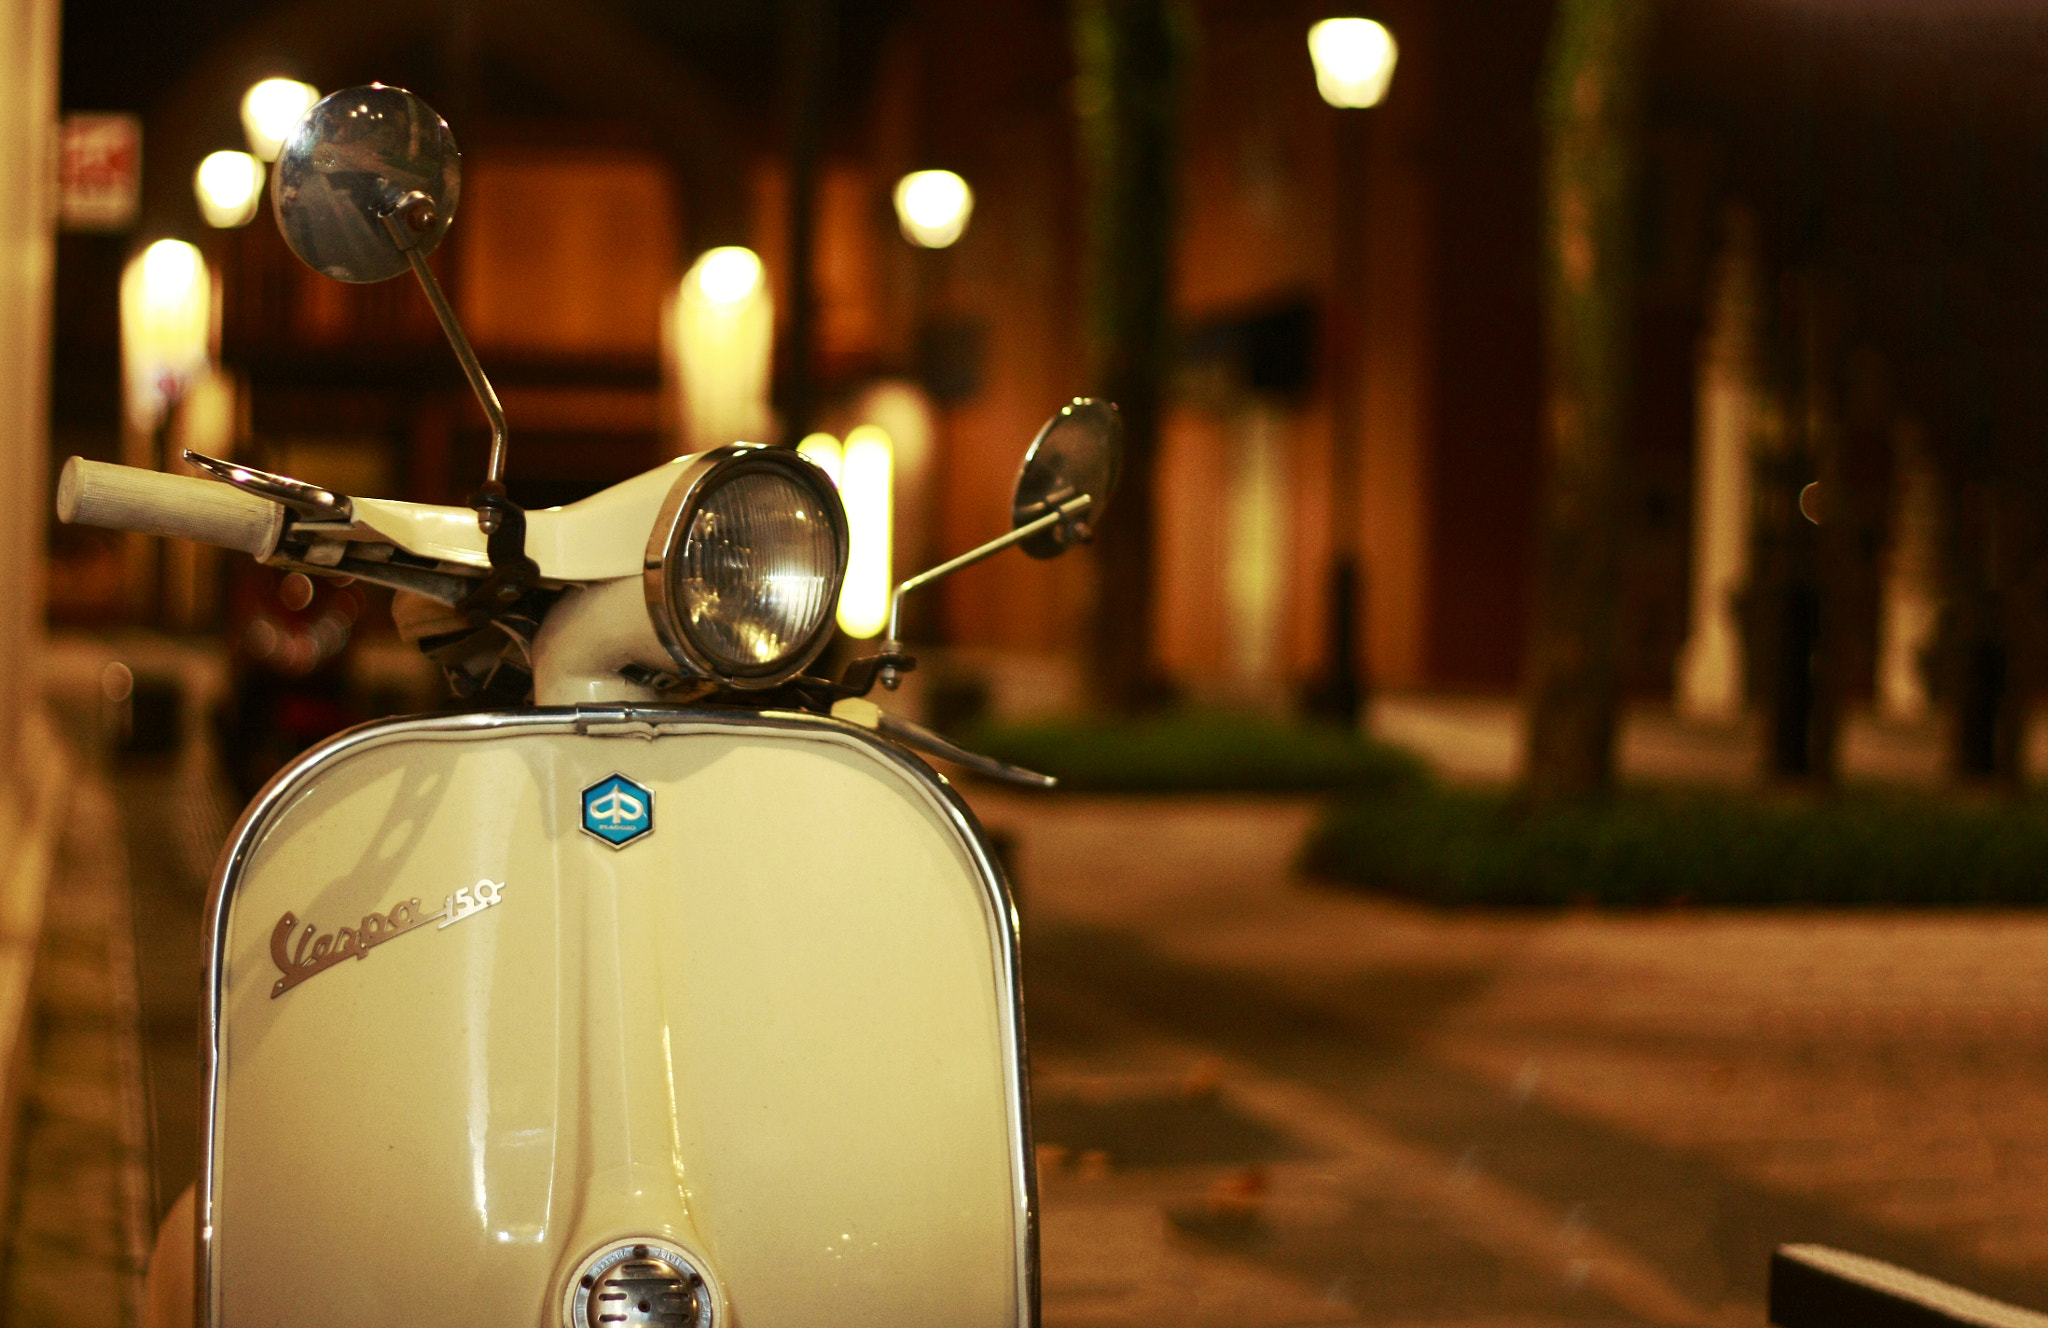 Photograph Piaggio's Legend by Qallam Ahmad on 500px